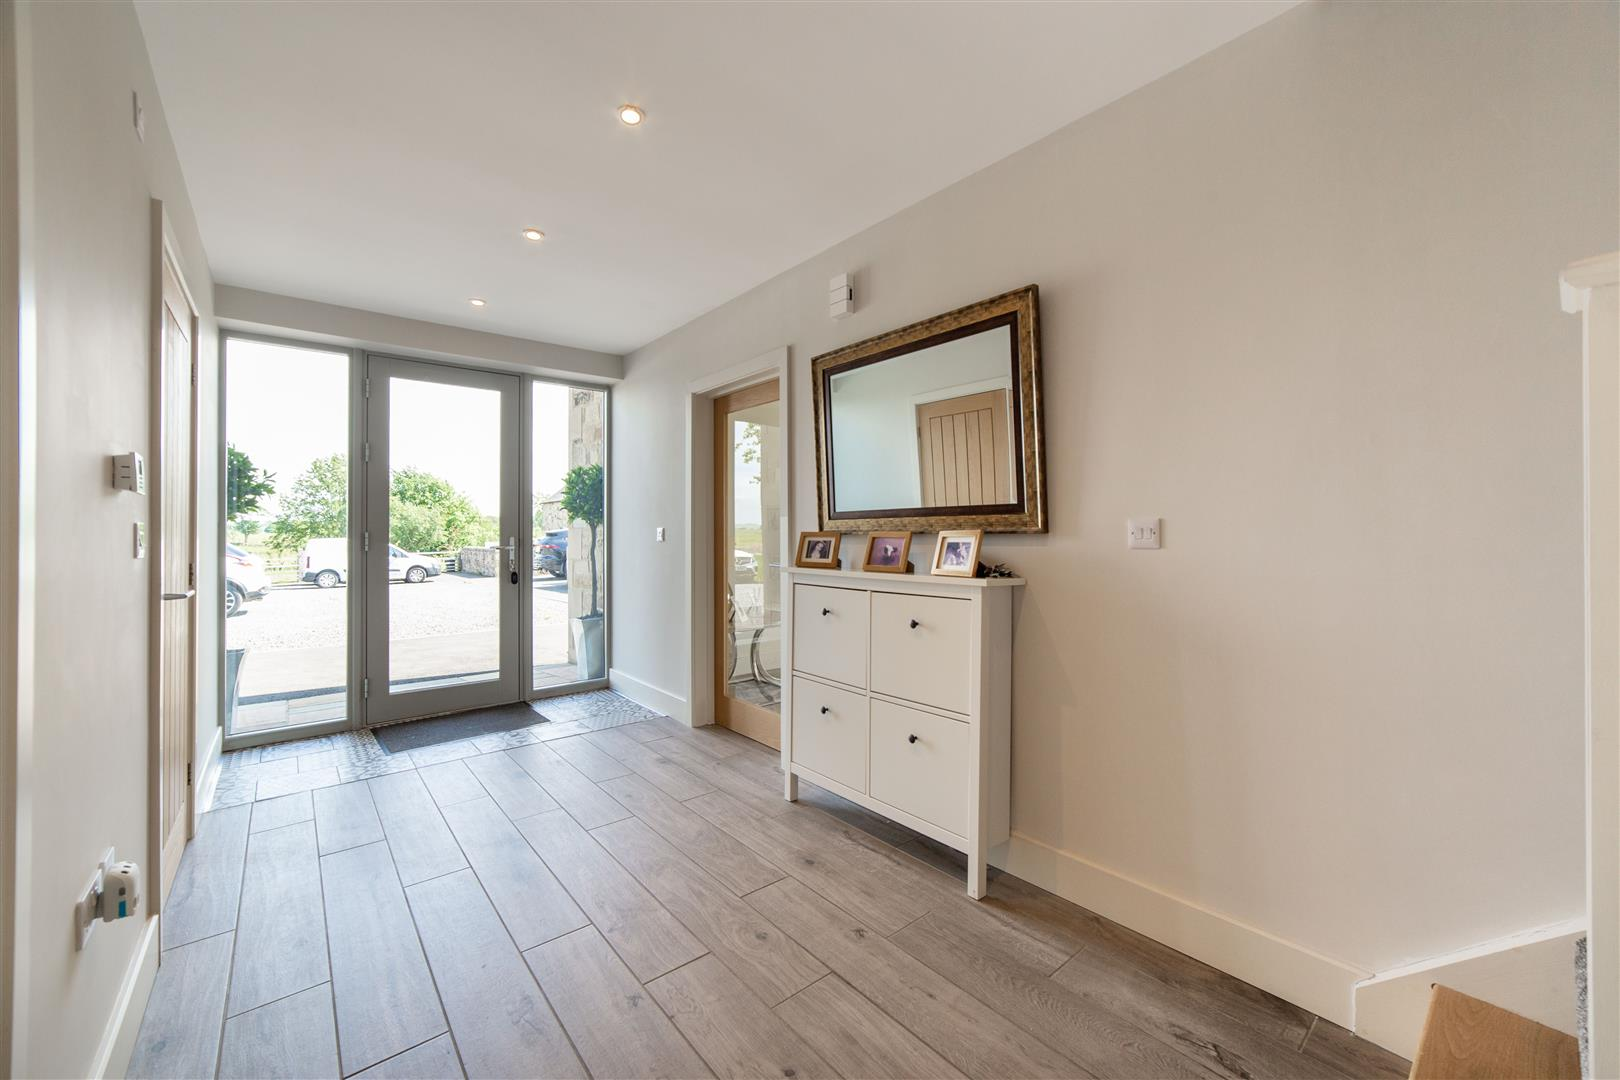 4 bed detached house for sale, Hexham 27